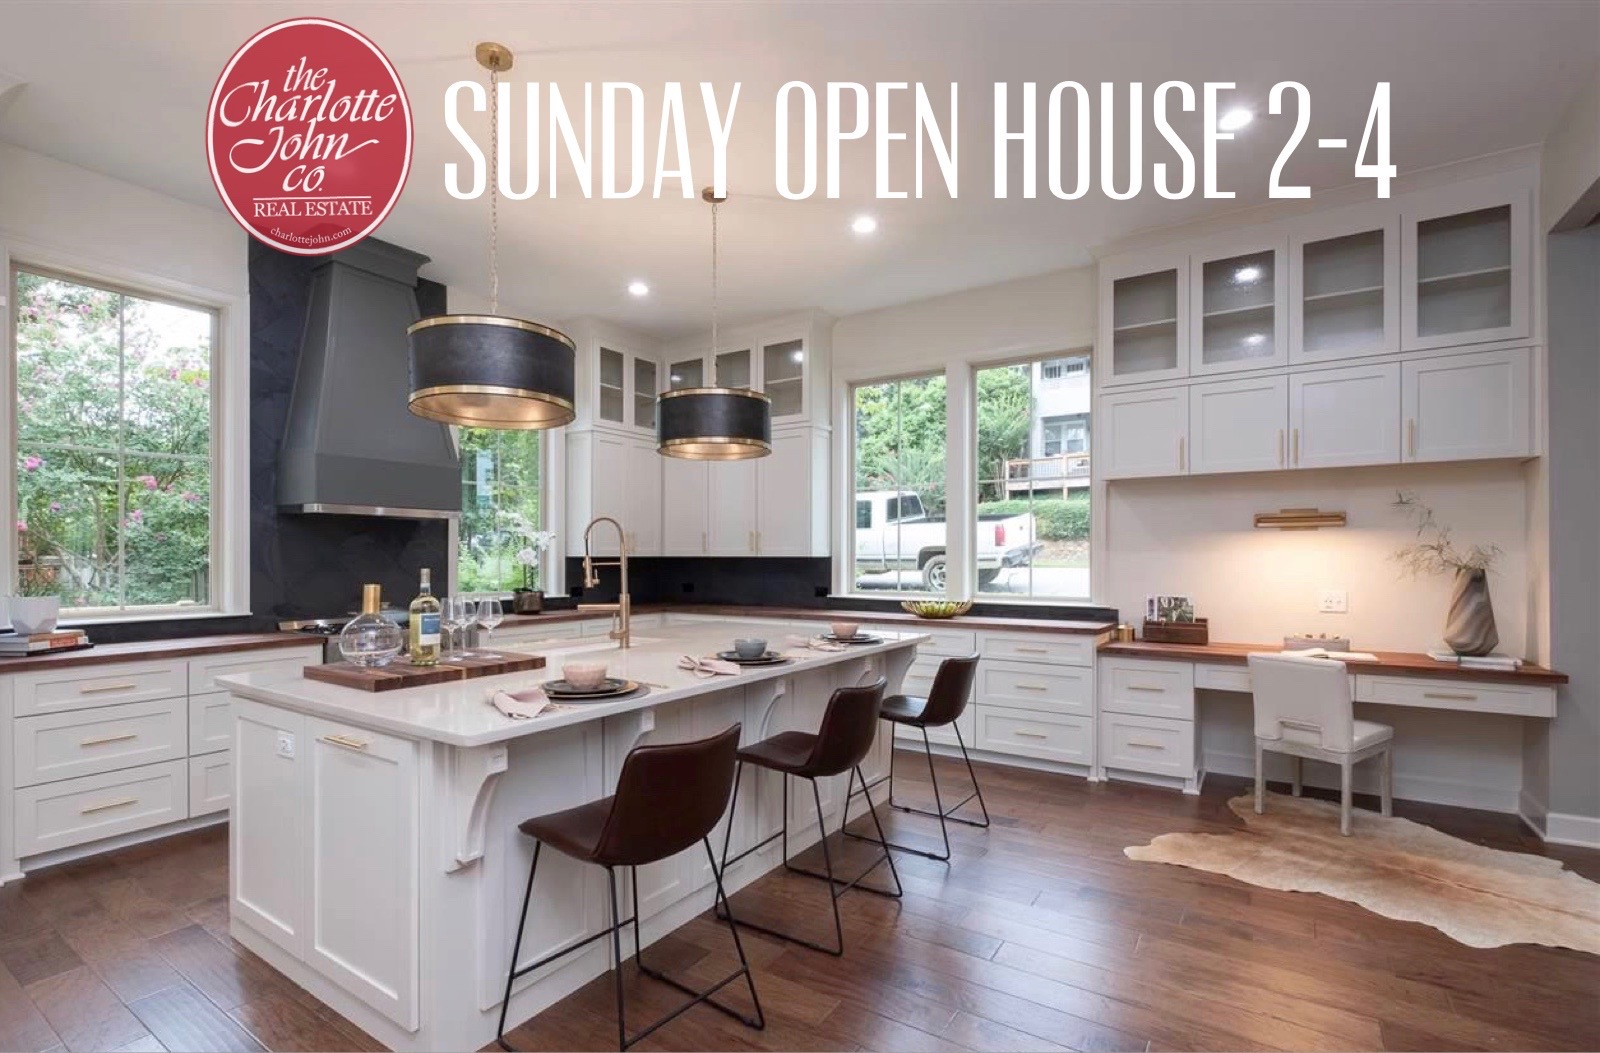 Open House Sunday, Feb. 16th